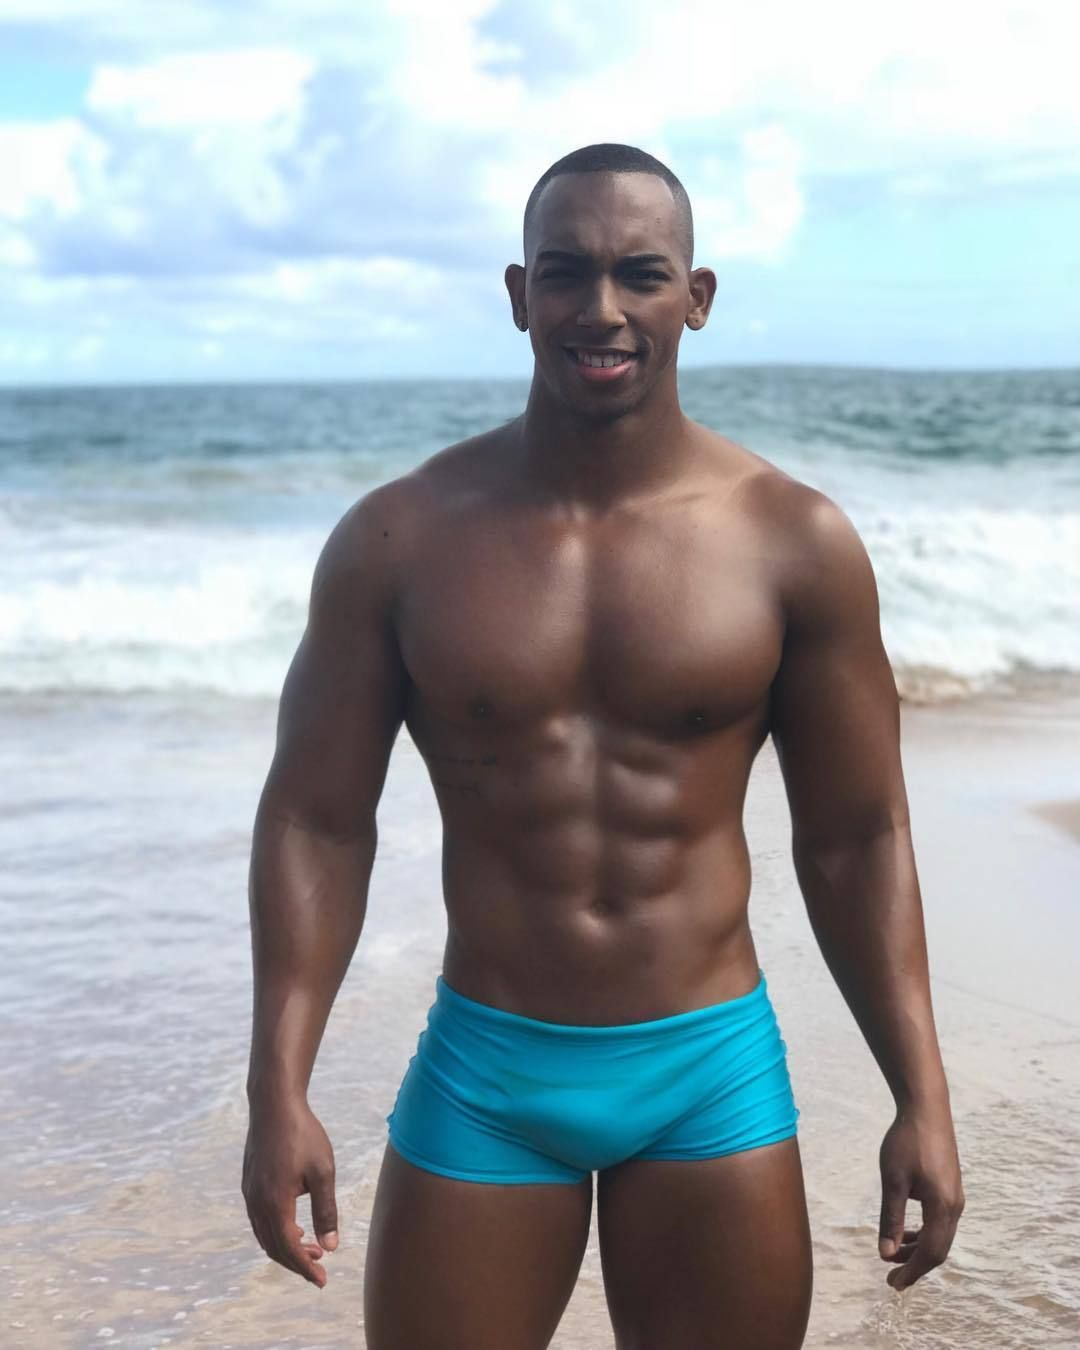 Hot Shirtless Guys In Images